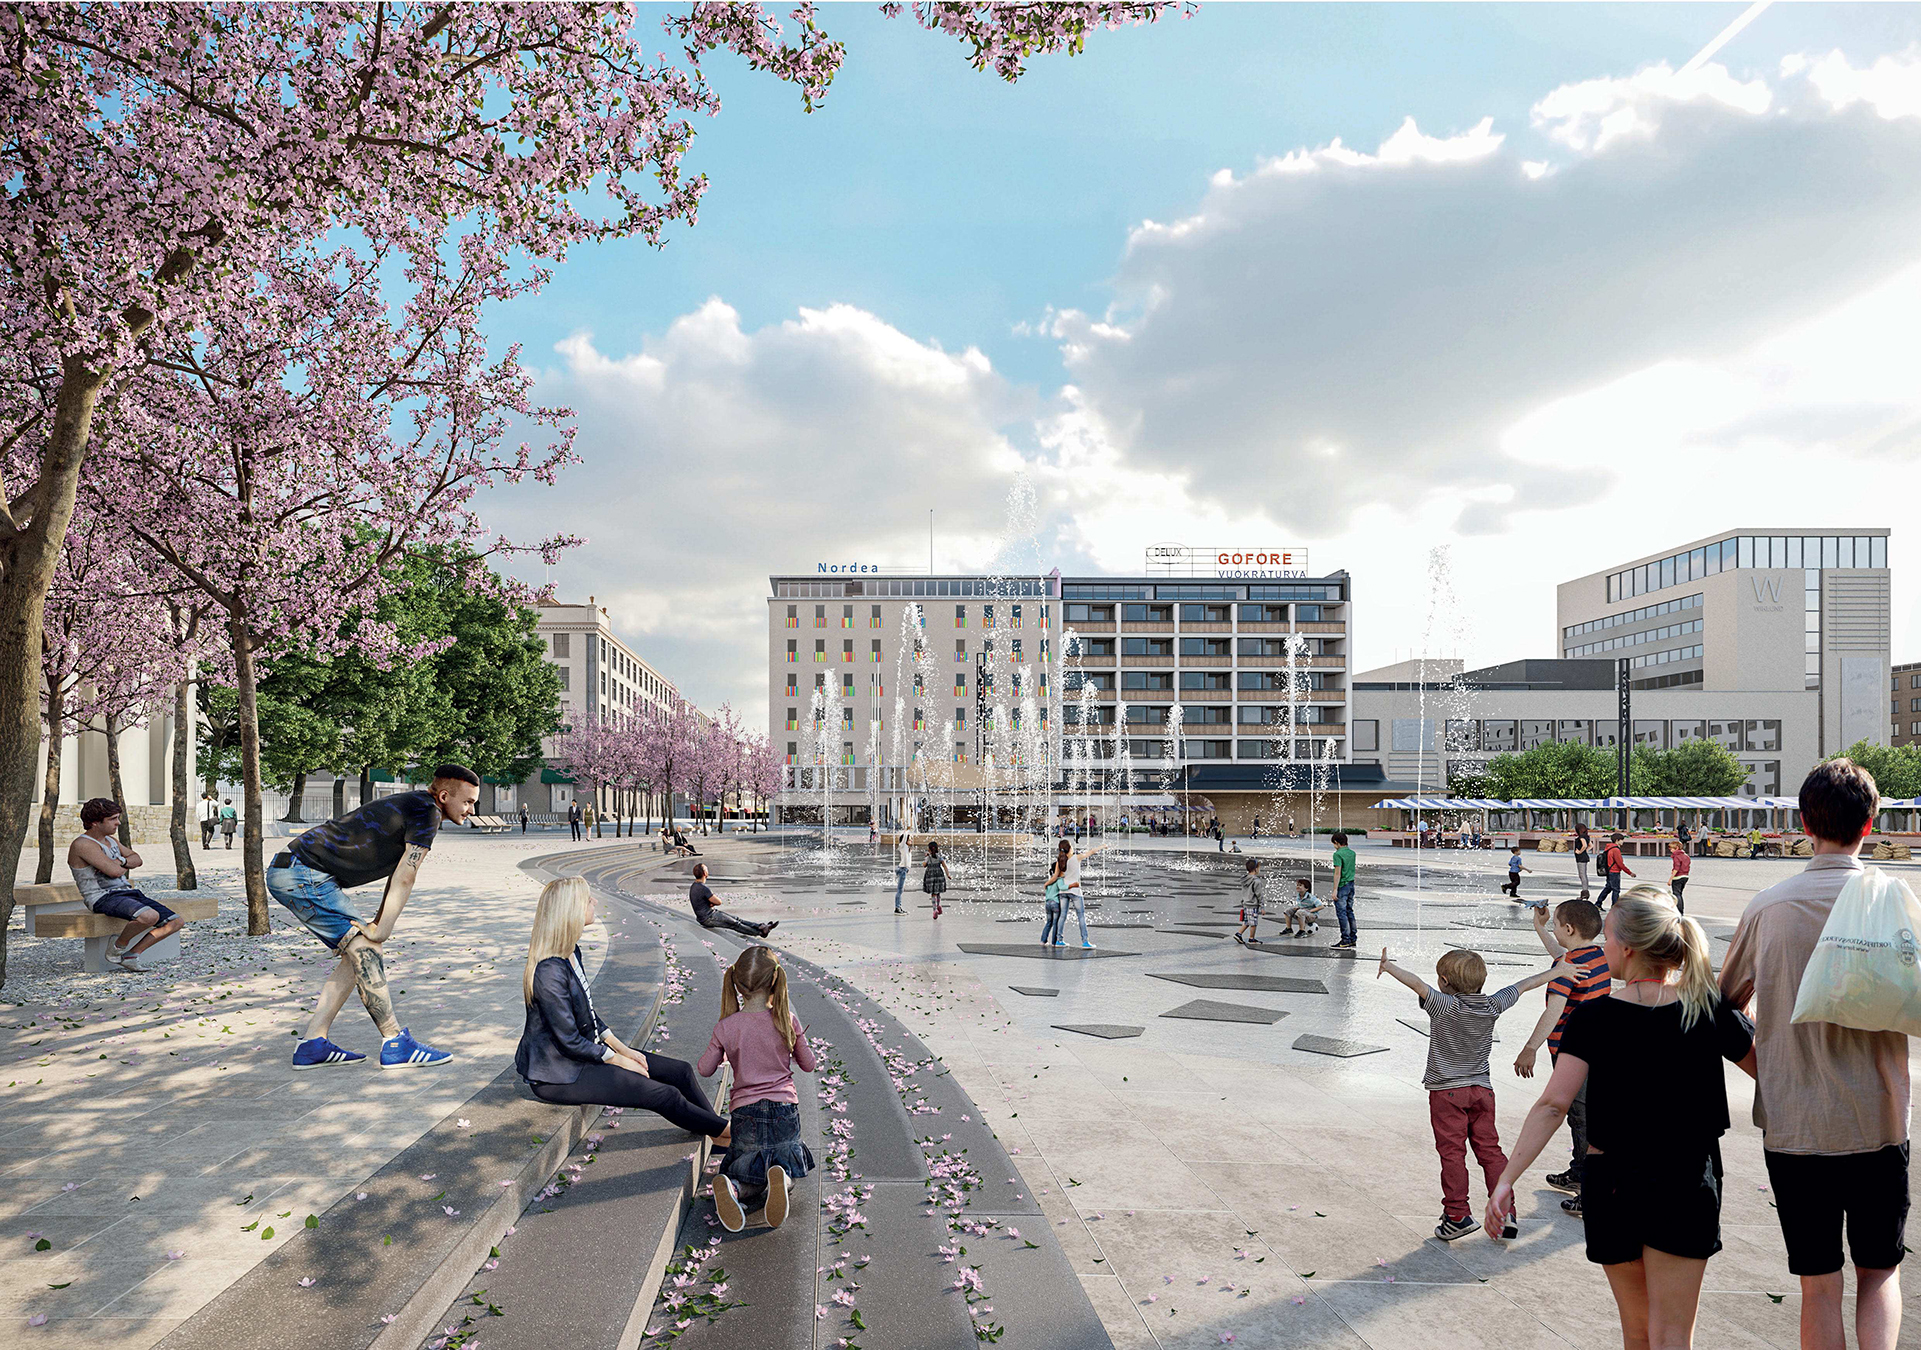 Sigge-Loci-Valoa -group is the winner of Turku Market Square design competition